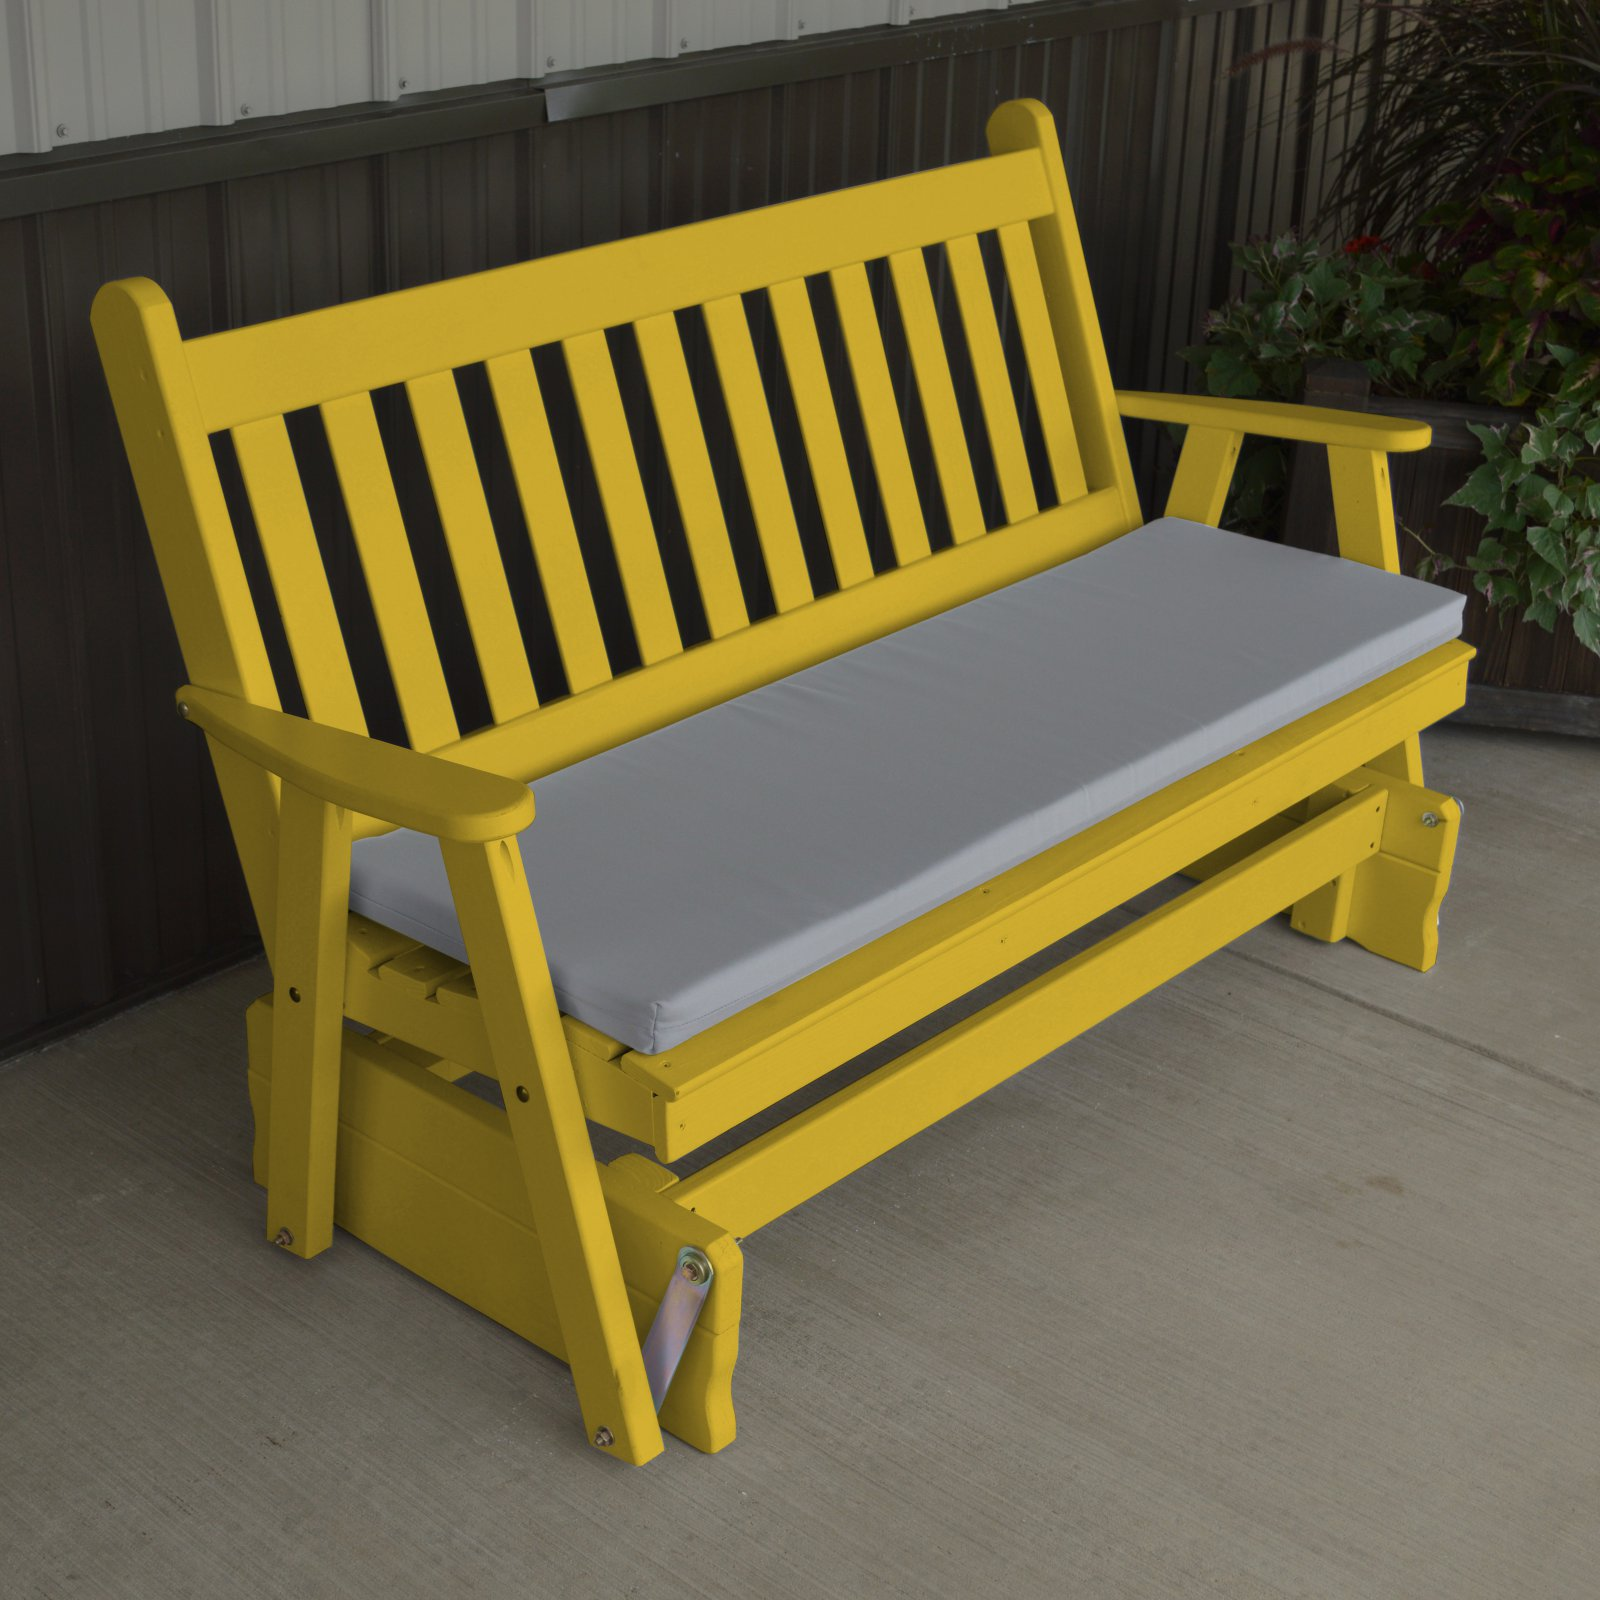 Superbe A U0026 L Furniture Yellow Pine Traditional English Outdoor Bench Glider